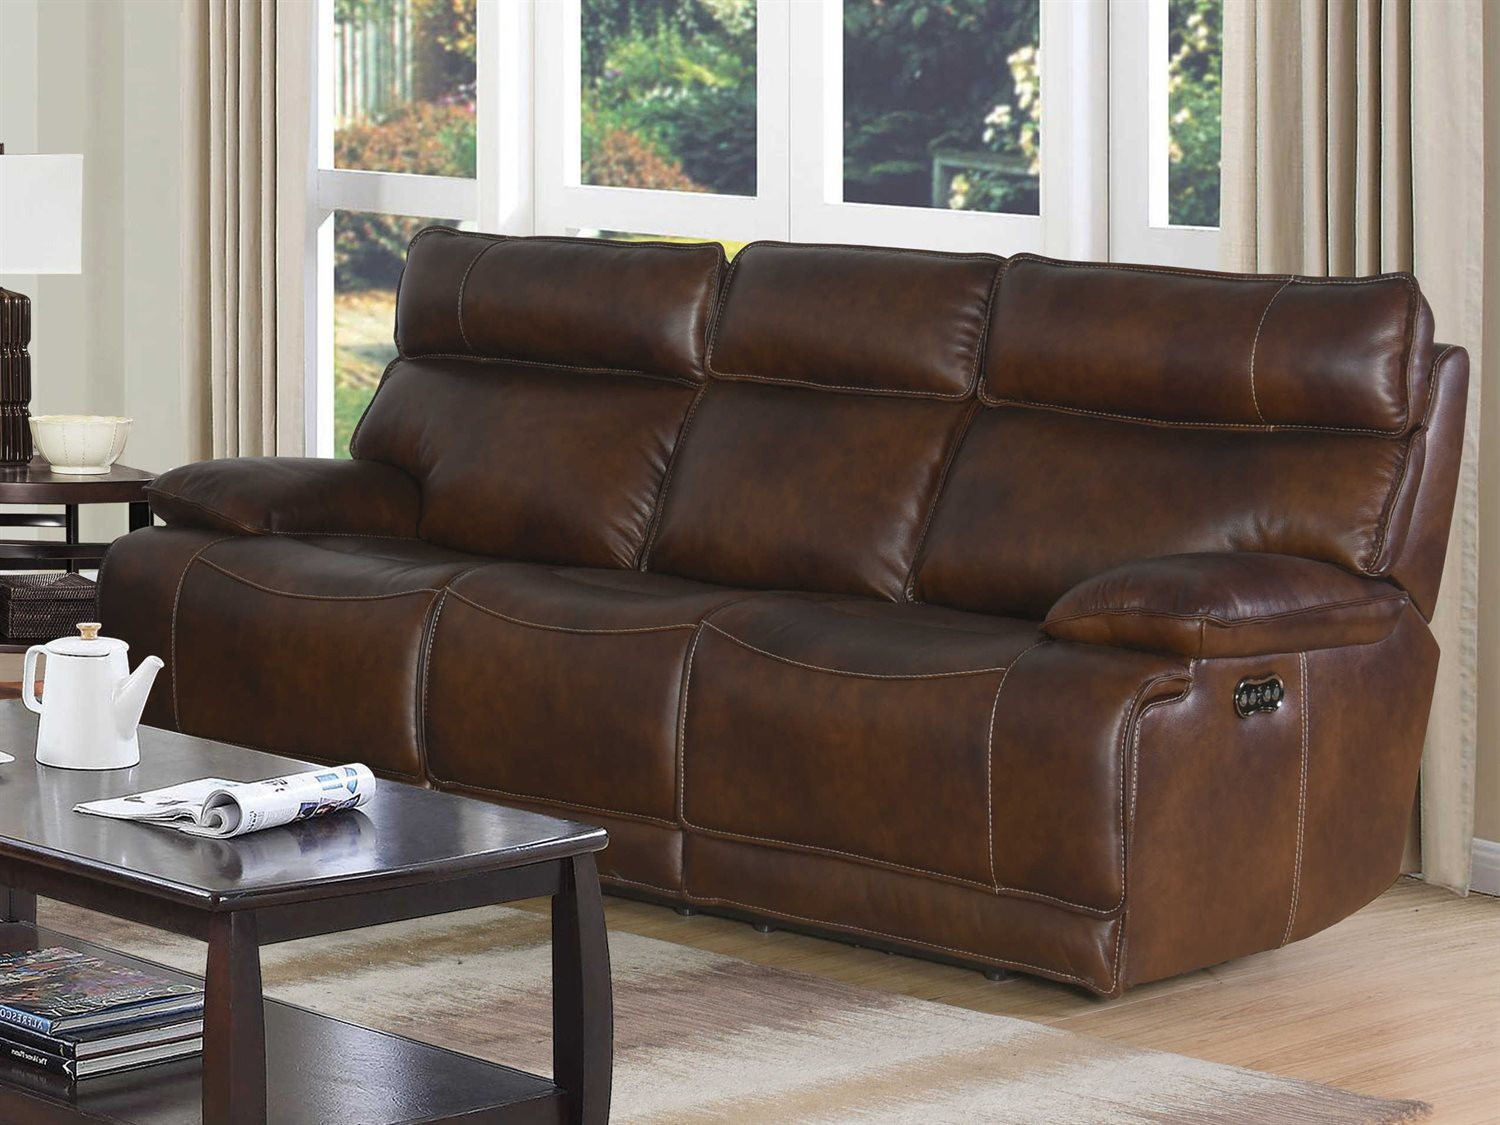 Barcalounger Casual Comfort Wesley Halifax Chocolate Power Reclining Sofa Bar39ph3265370486